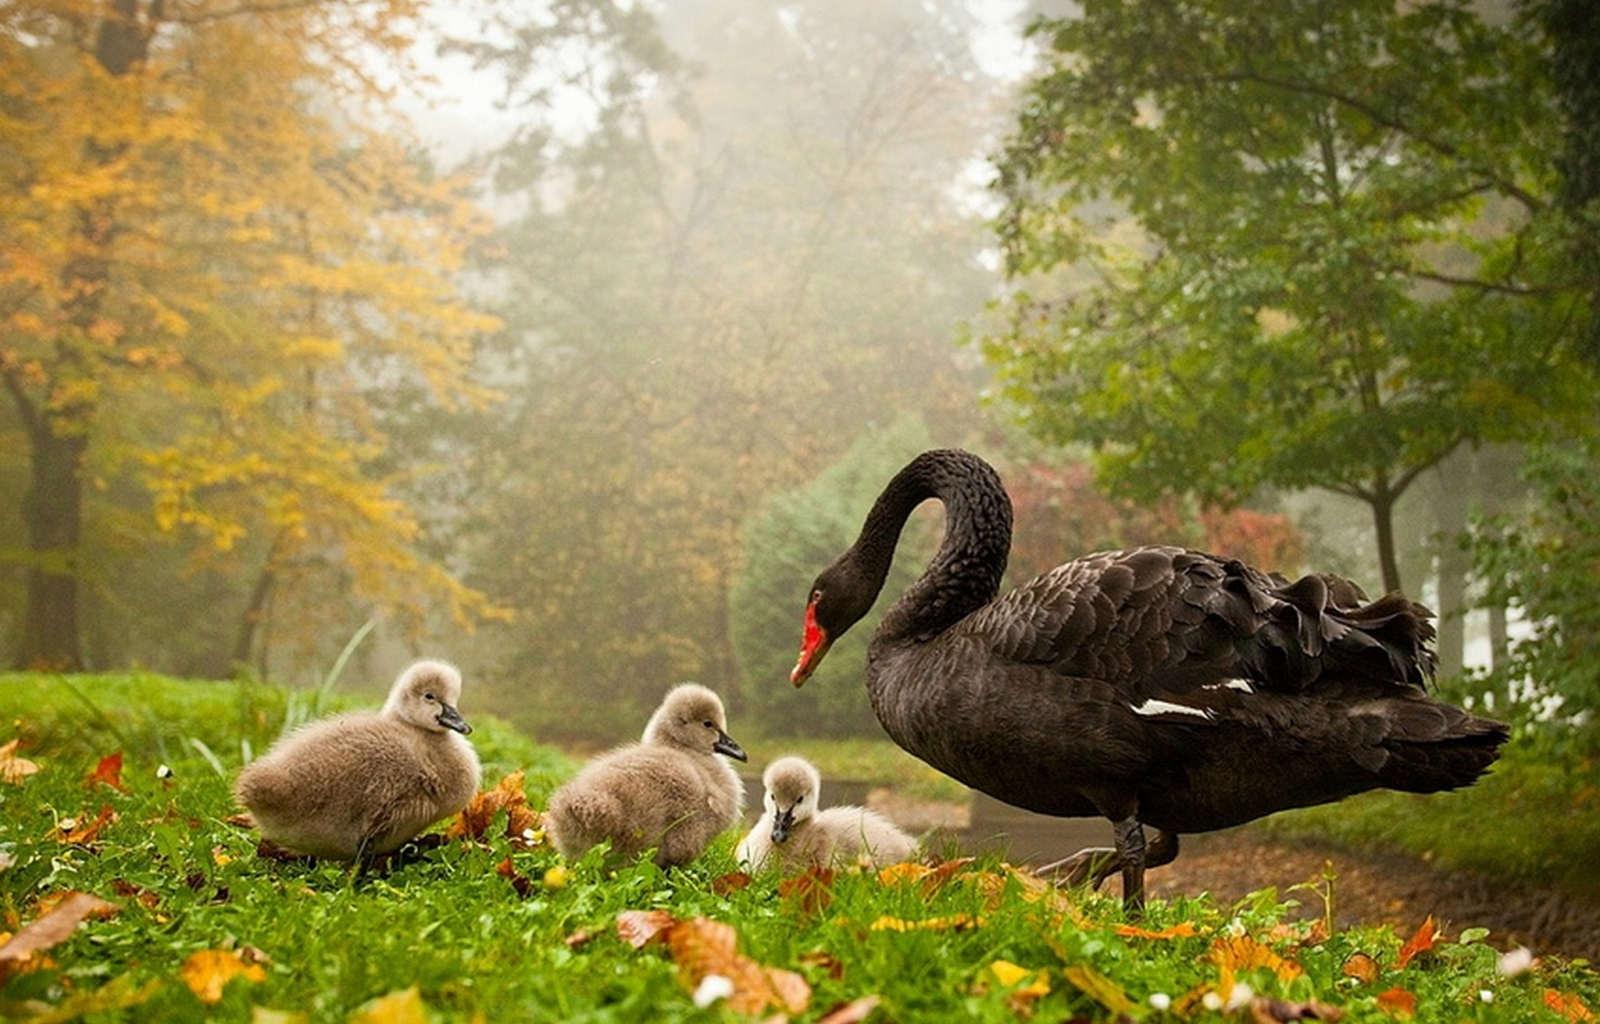 33816 download wallpaper Animals, Birds, Swans screensavers and pictures for free